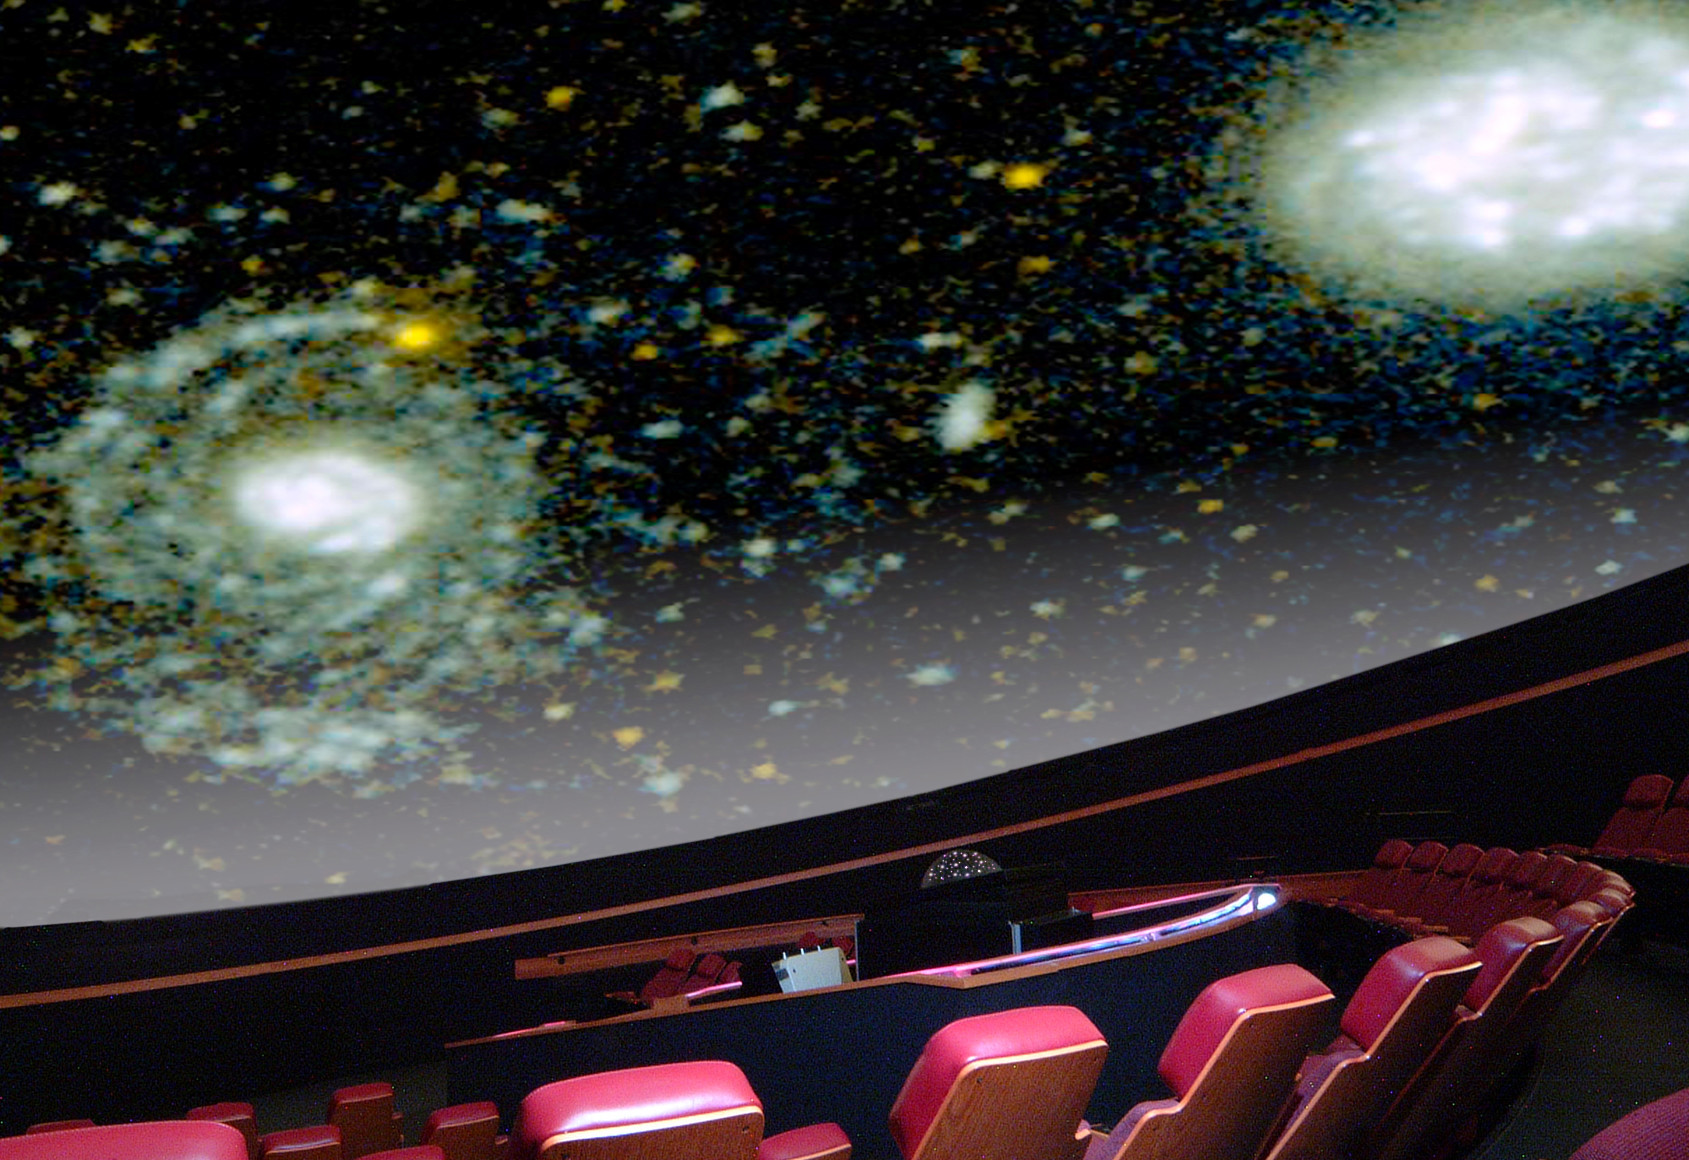 Palnetarium auditorium with stars projected on the ceiling